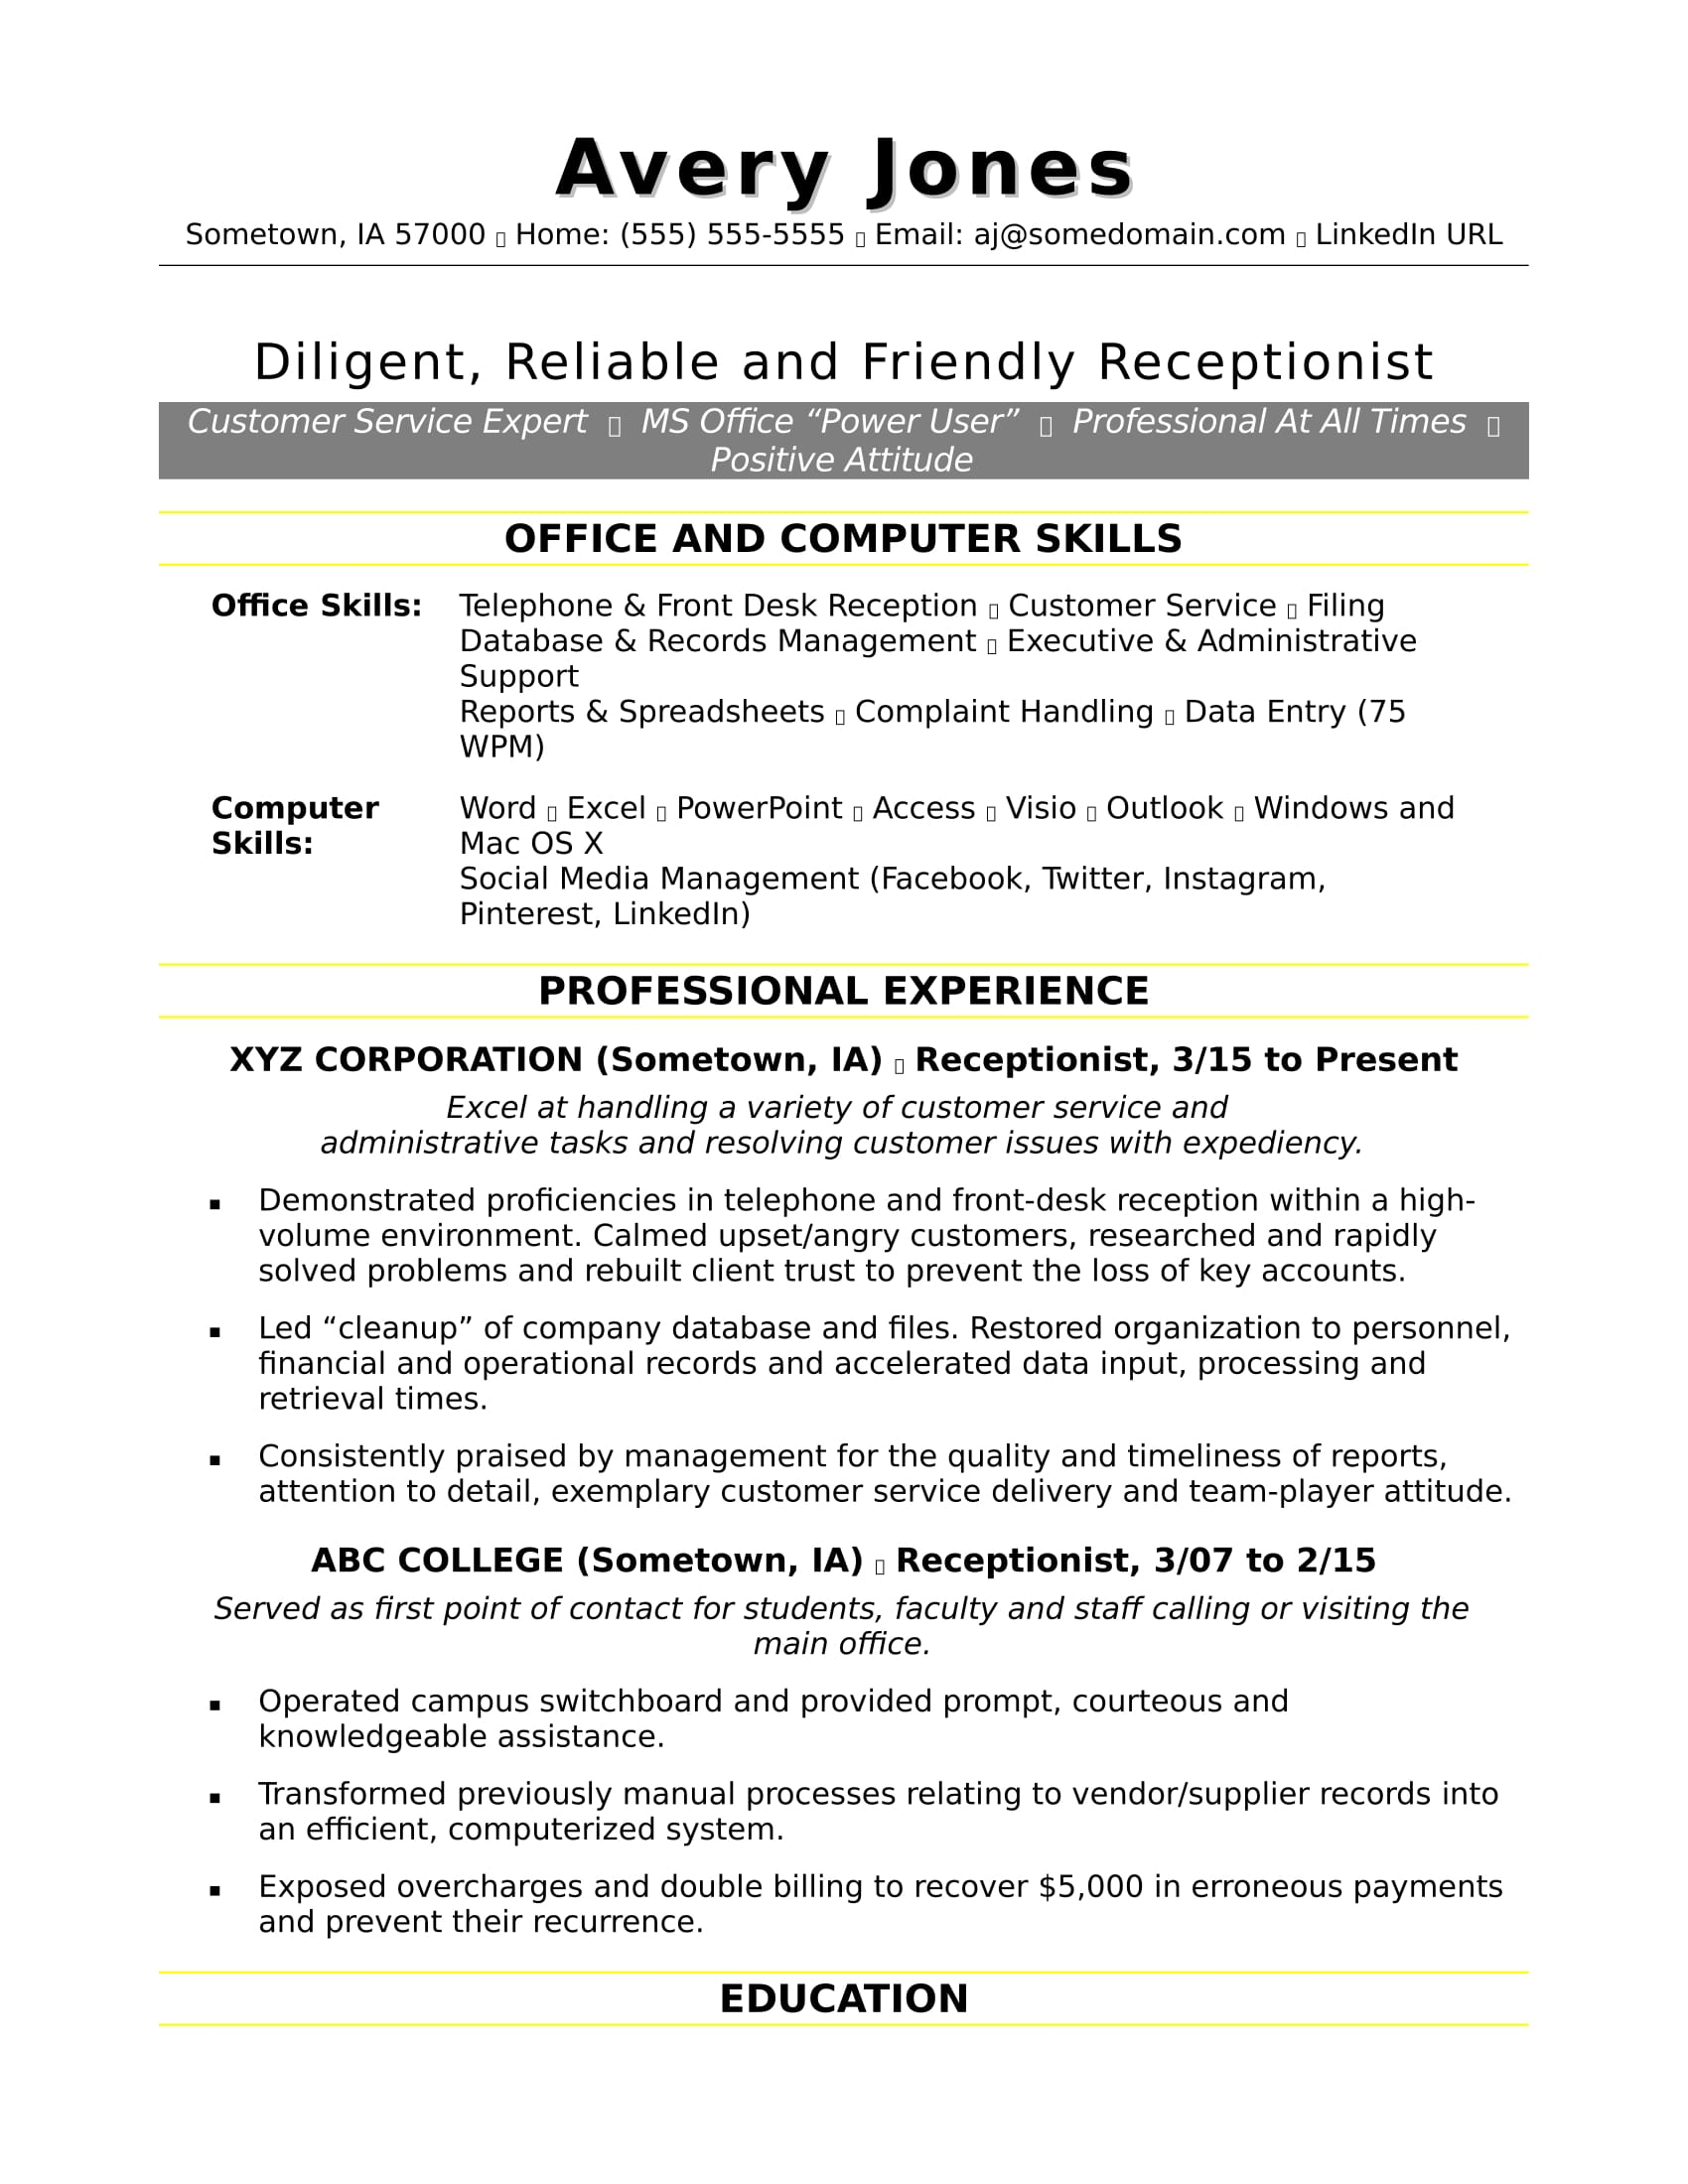 Sample Resume For A Receptionist  What Do Resumes Look Like